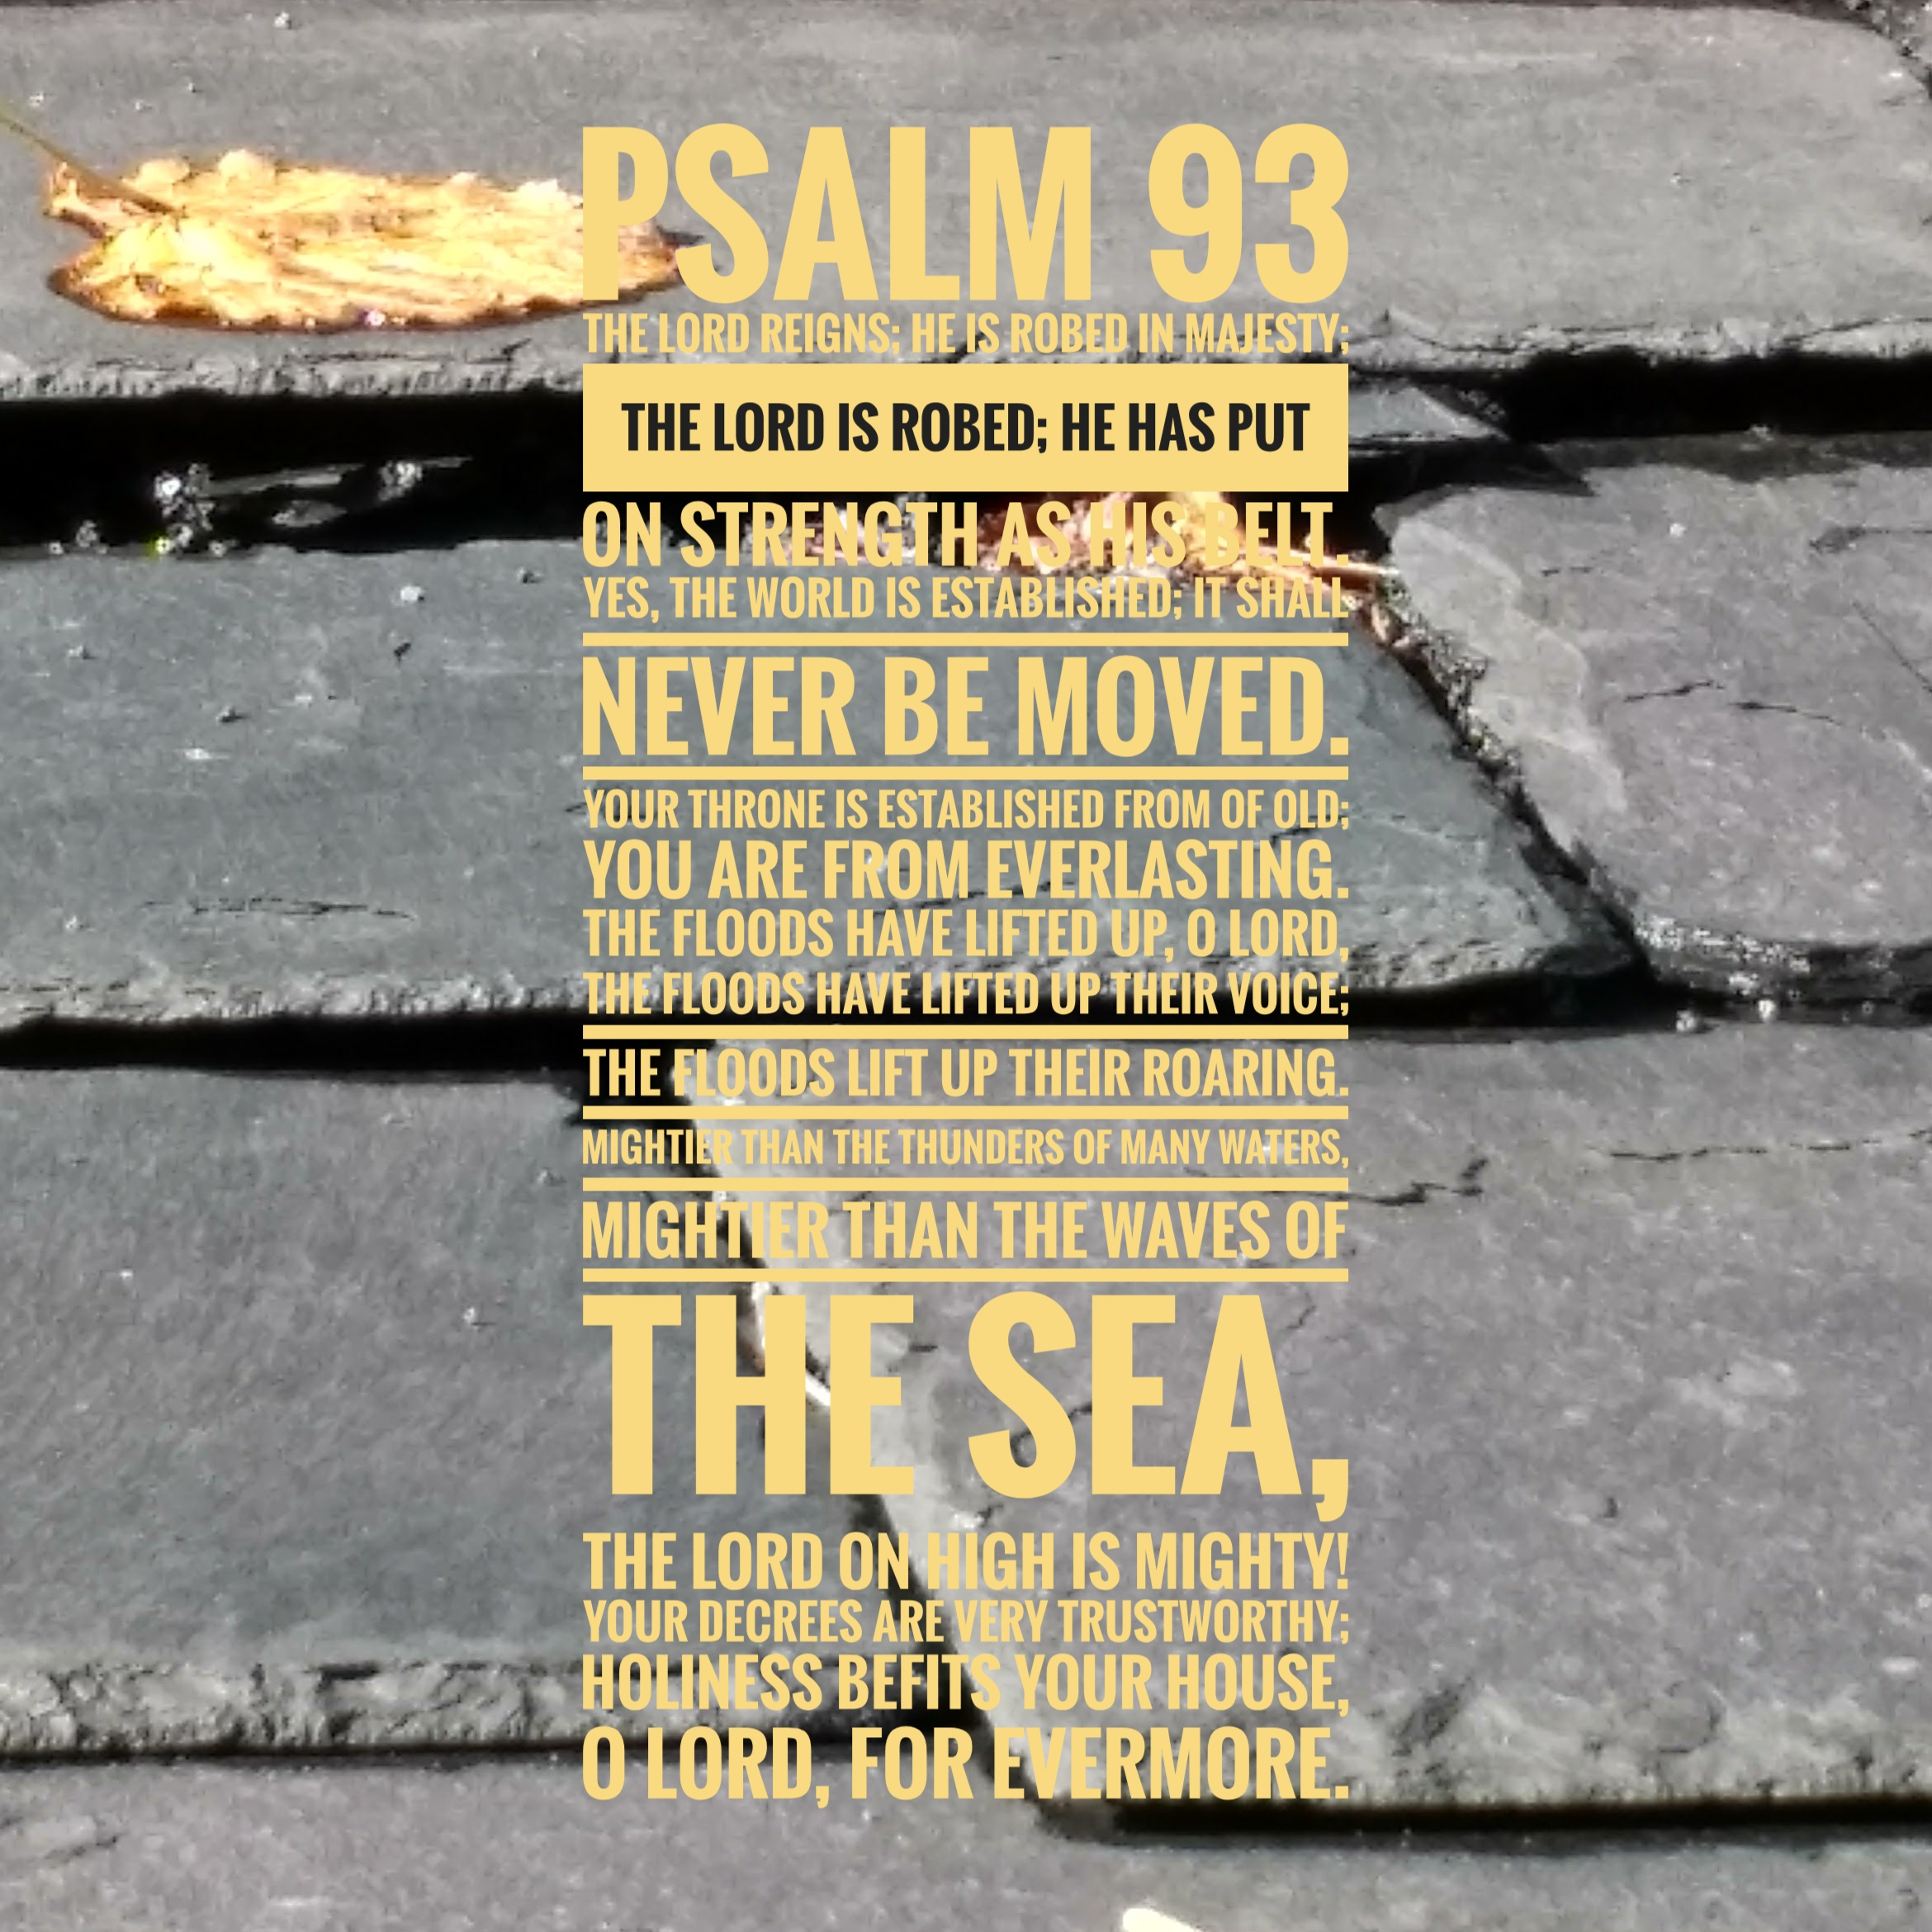 [Yellow text on background of grey slate roofing tiles] Psalm 93 The Lord reigns; he is robed in majesty; the Lord is robed; he has put on strength as his belt. Yes, the world is established; it shall never be moved. Your throne is established from of old; you are from everlasting. The floods have lifted up, O Lord, the floods have lifted up their voice; the floods lift up their roaring. Mightier than the thunders of many waters, mightier than the waves of the sea, the Lord on high is mighty! Your decrees are very trustworthy; holiness befits your house, O Lord, for evermore.